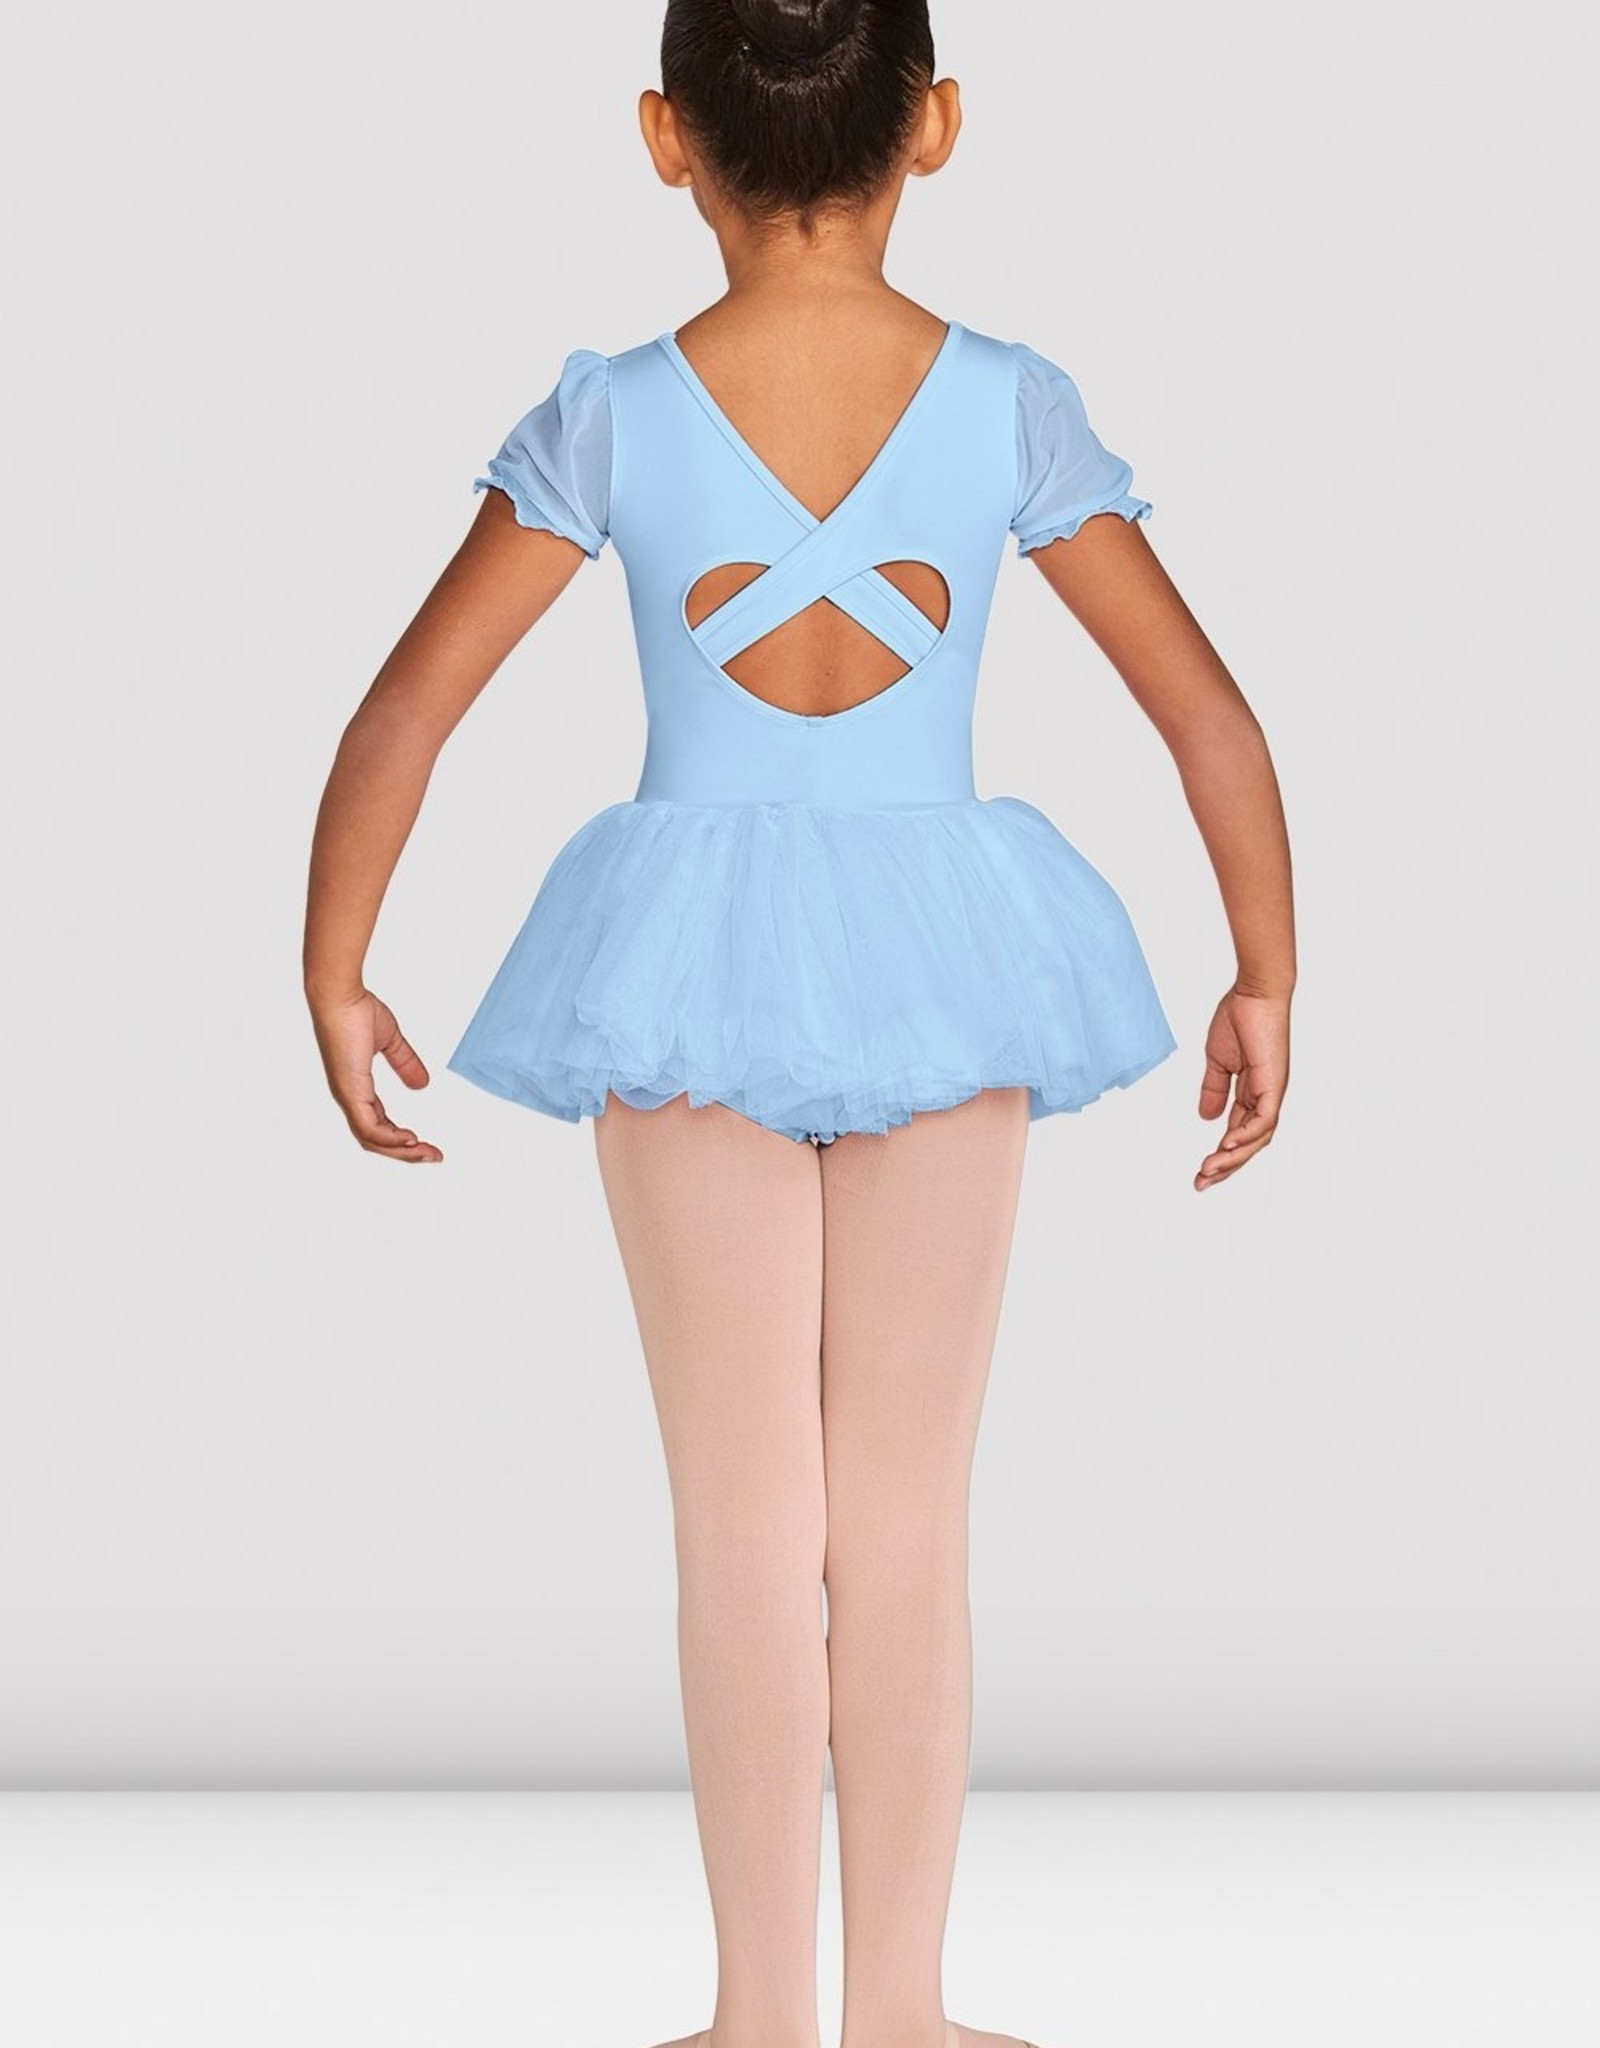 Bloch Bloch Diamante Frill Tutu Leotard - CL5542